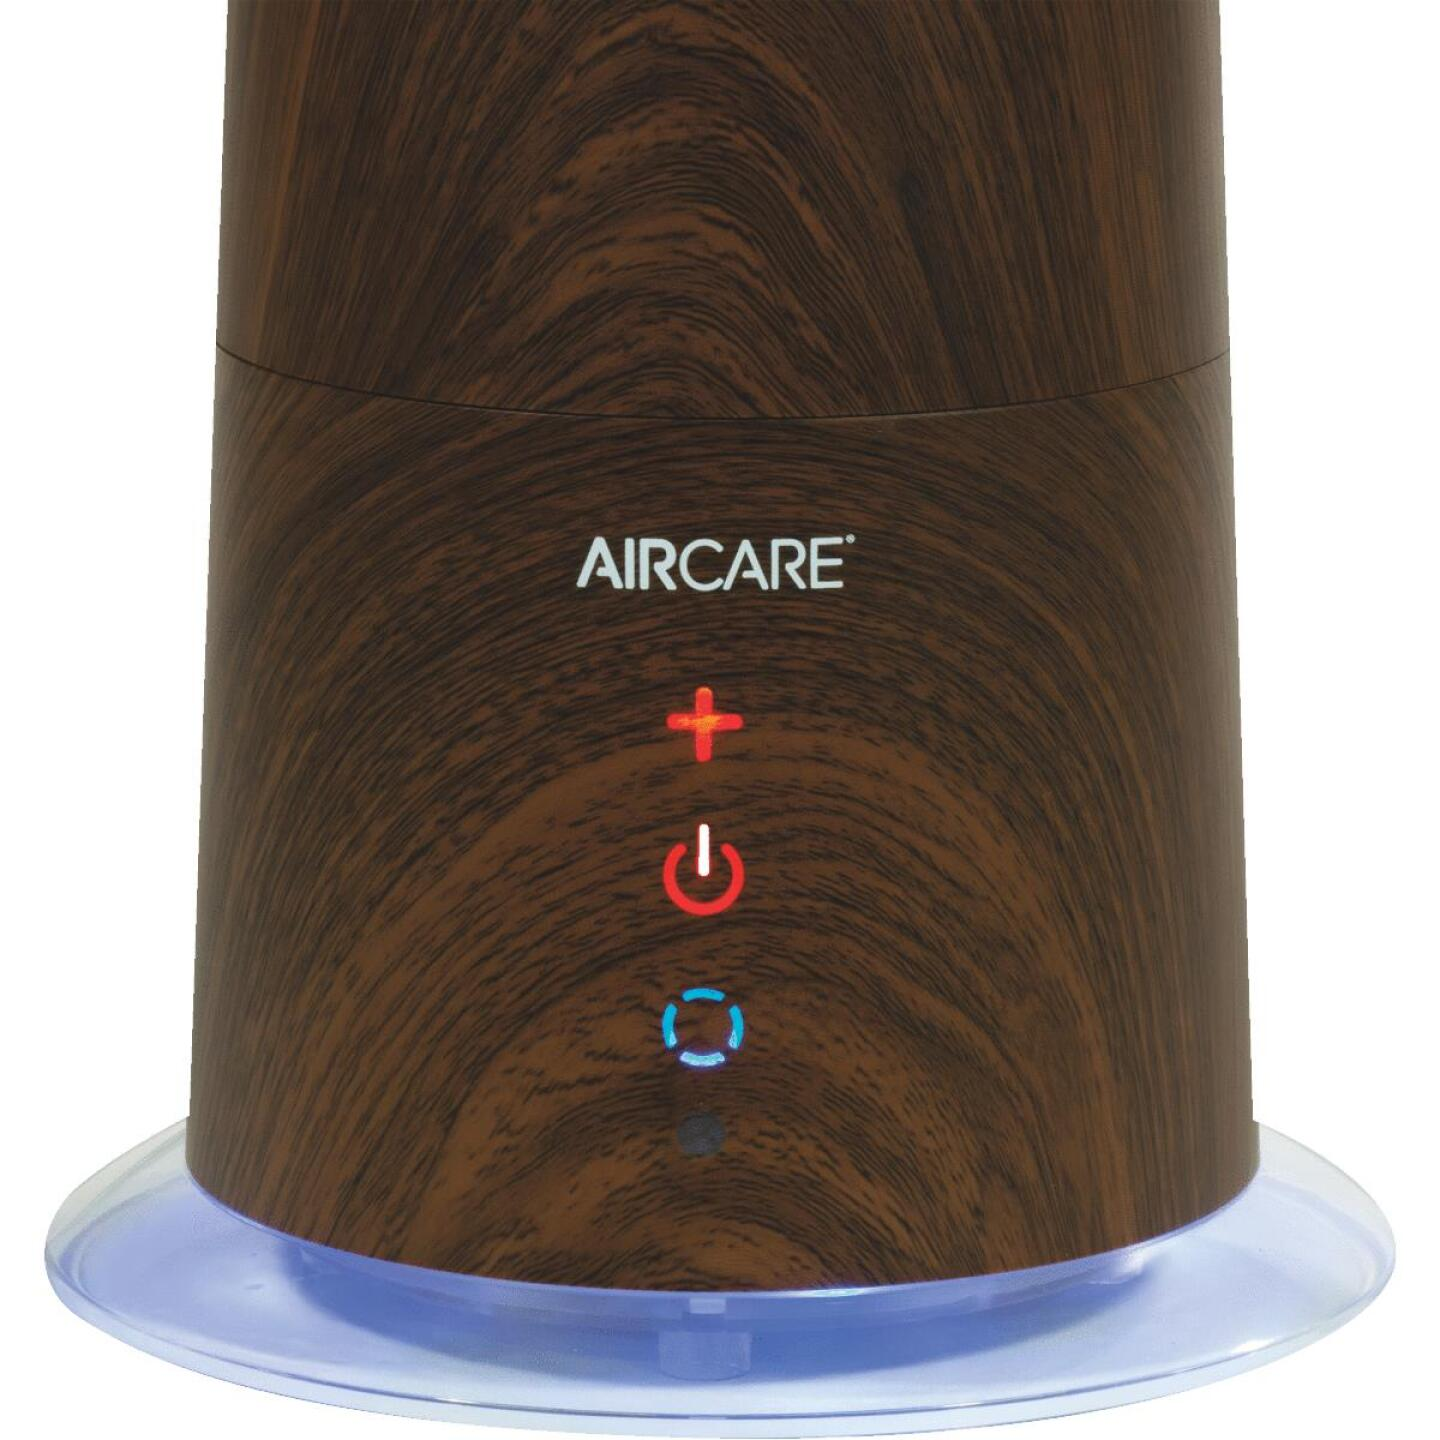 Essick Air Aircare Mesa 0.8 Gal. Capacity 750 Sq. Ft. Ultrasonic Humidifier Image 5